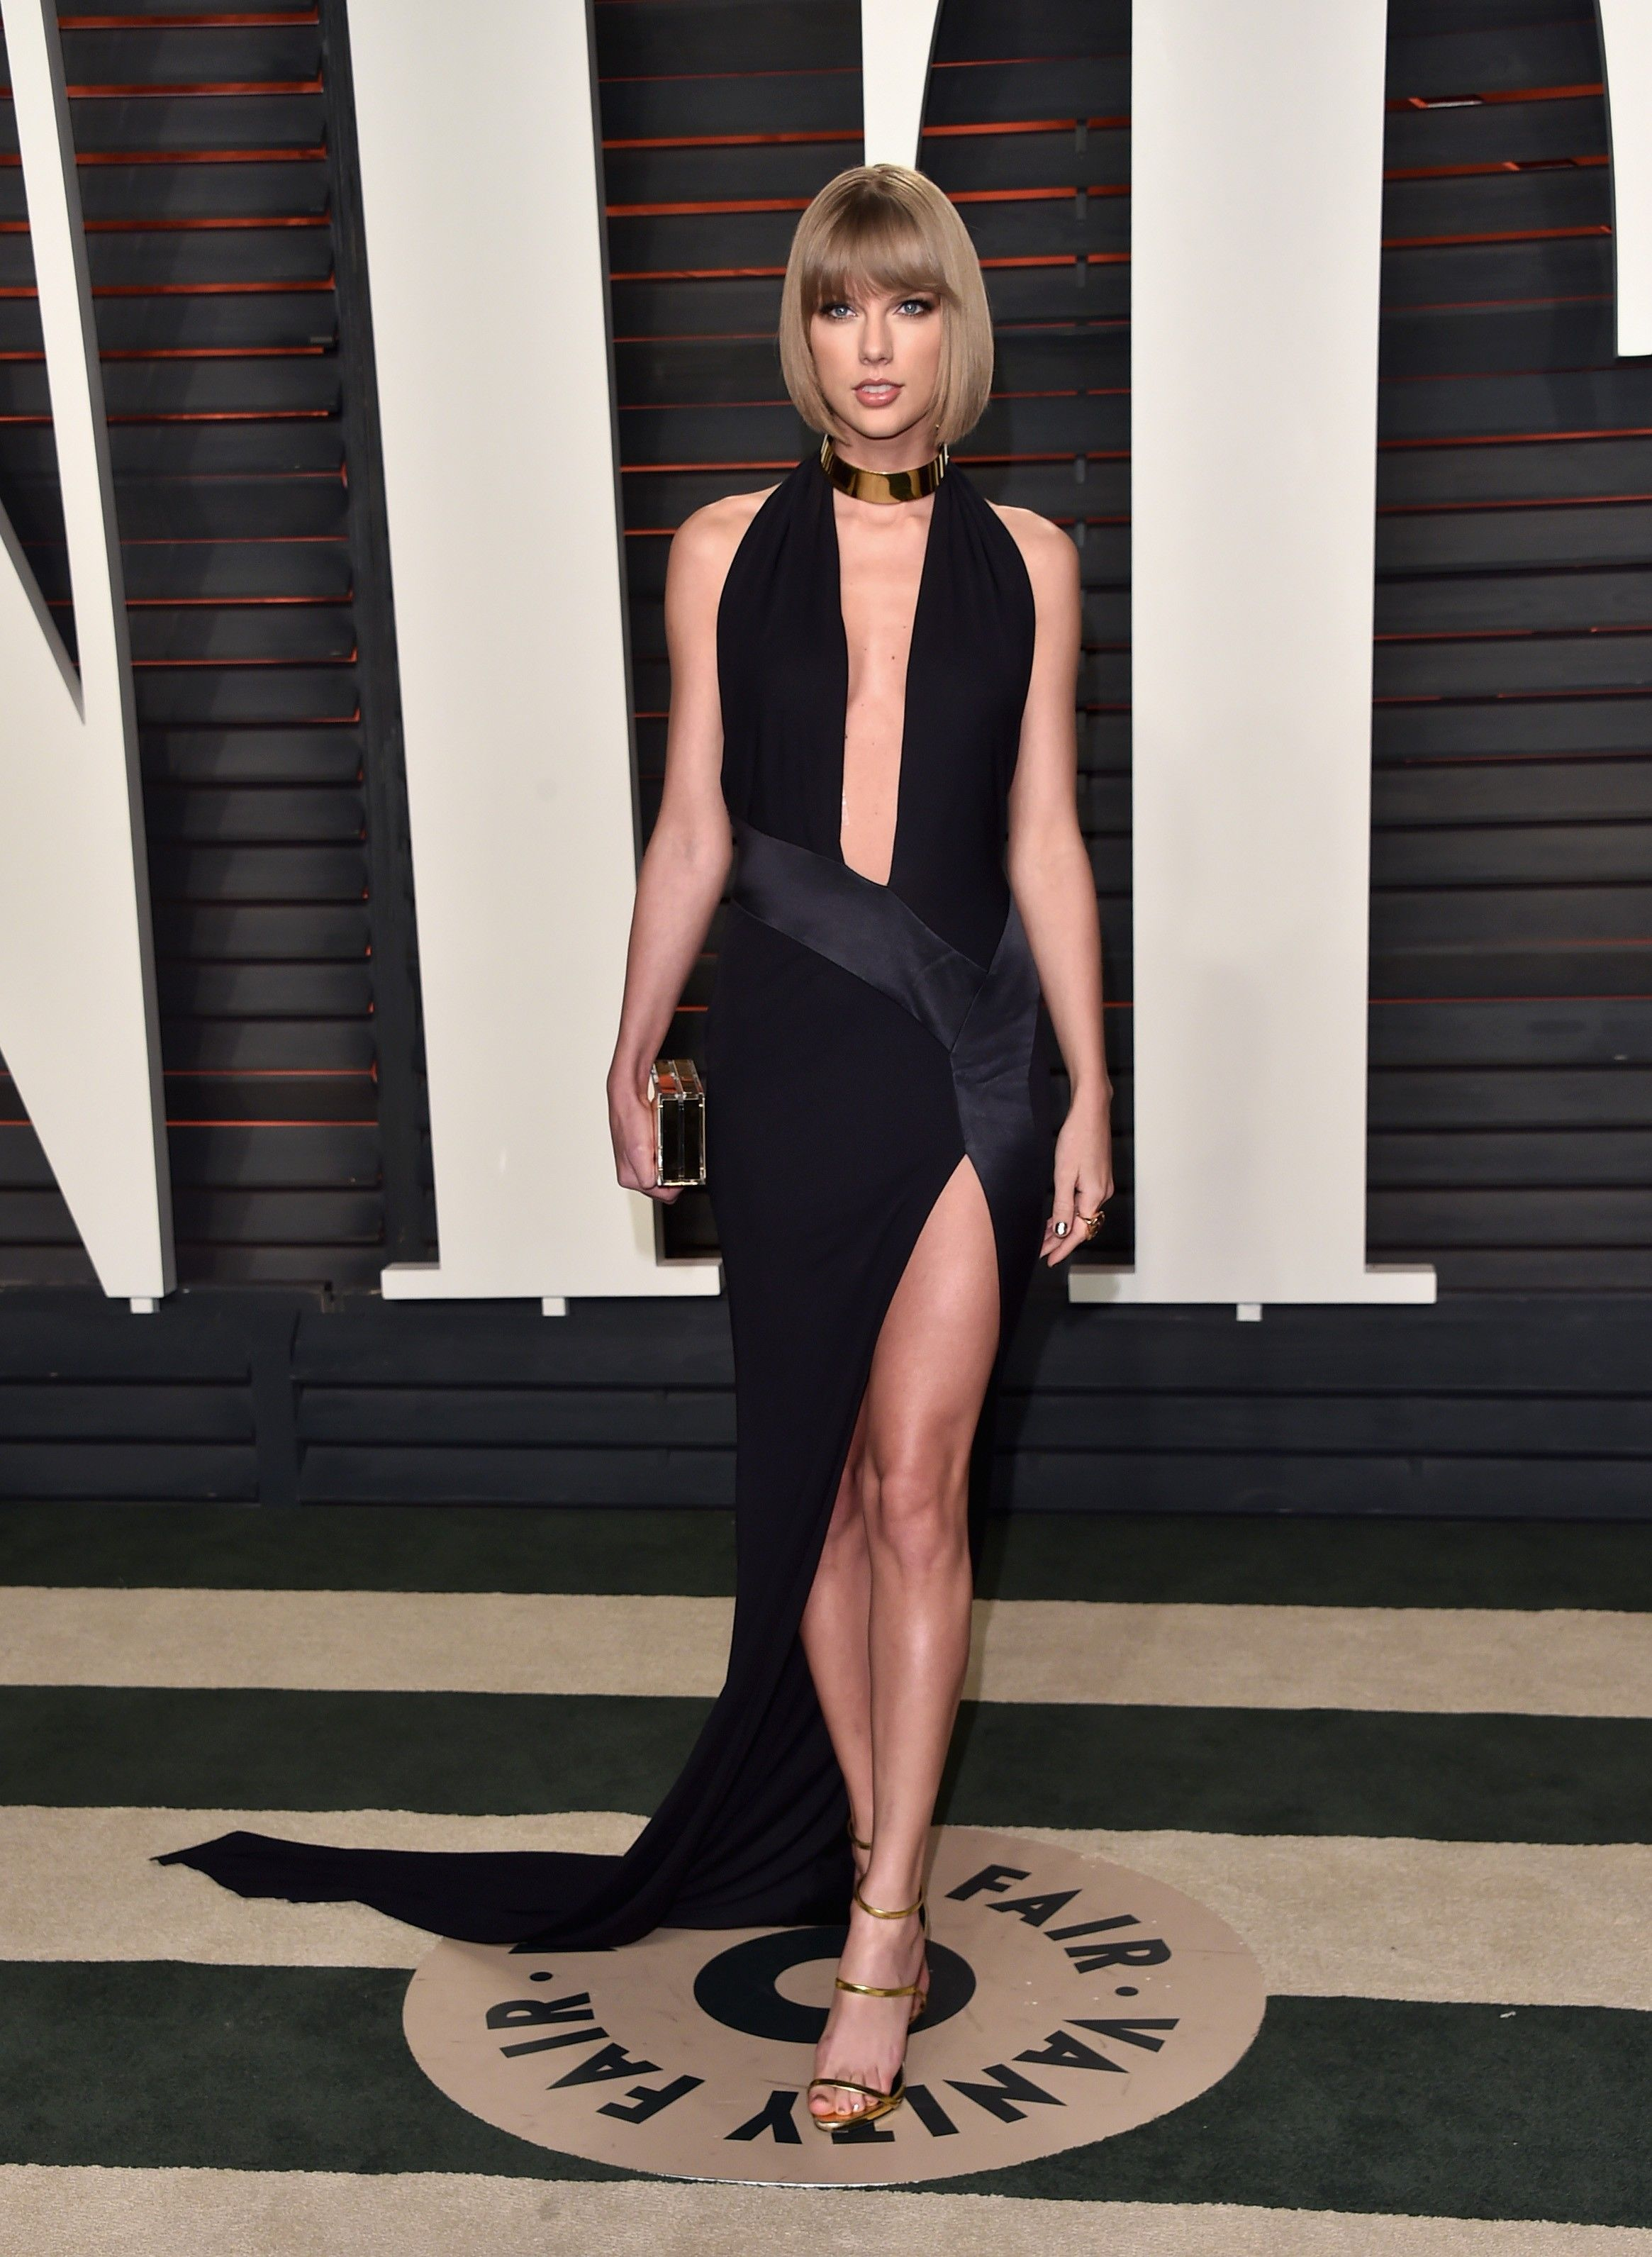 b2967e9d793 Every Oscars After-Party Dress You Need to See - Taylor Swift  Alexandre  Vauthier haute couture dress  Lorraine Schwartz ring  Jimmy Choo clutch  ...